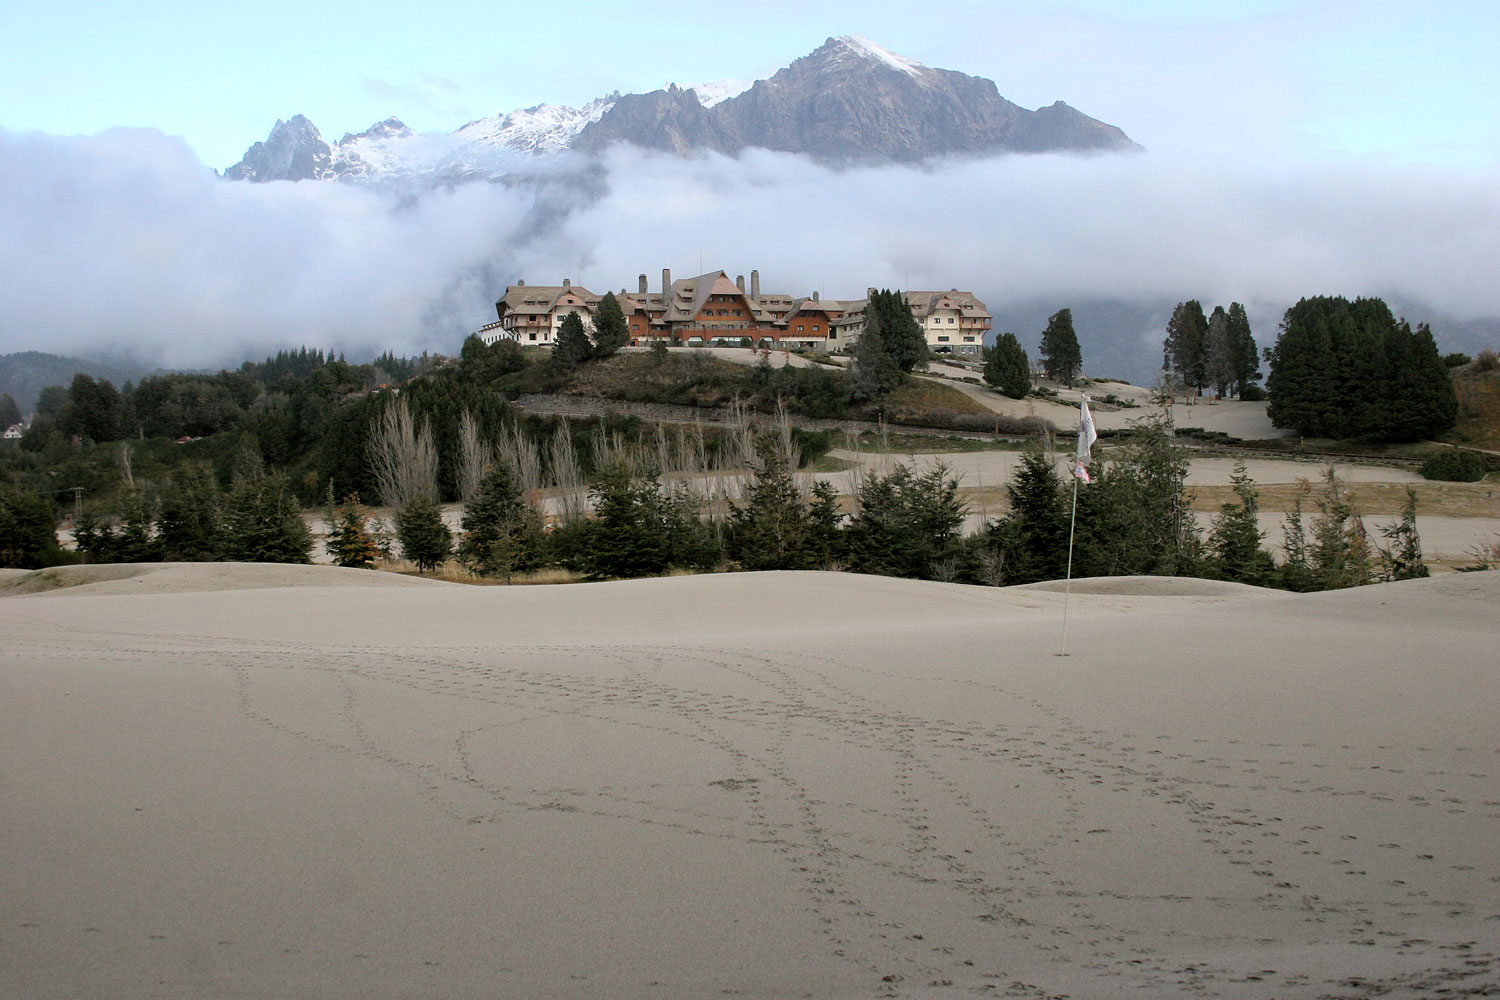 A view of the 9th hole green covered in ash at the Llao Llao hotel golf course in Bariloche, Argentina.